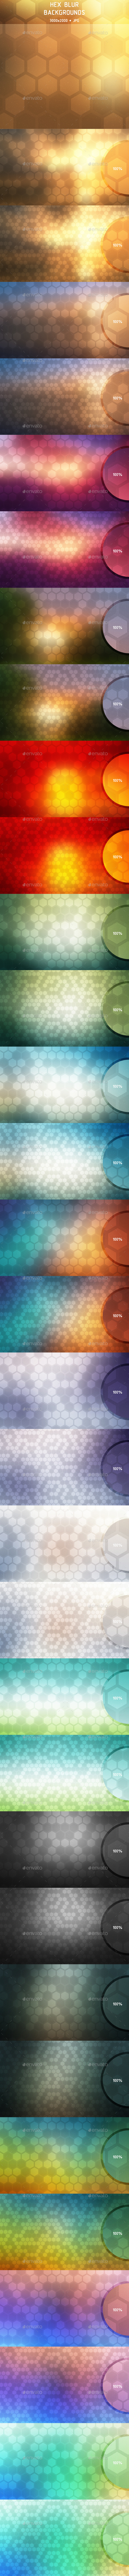 GraphicRiver Hex Blur Backgrounds 10206360